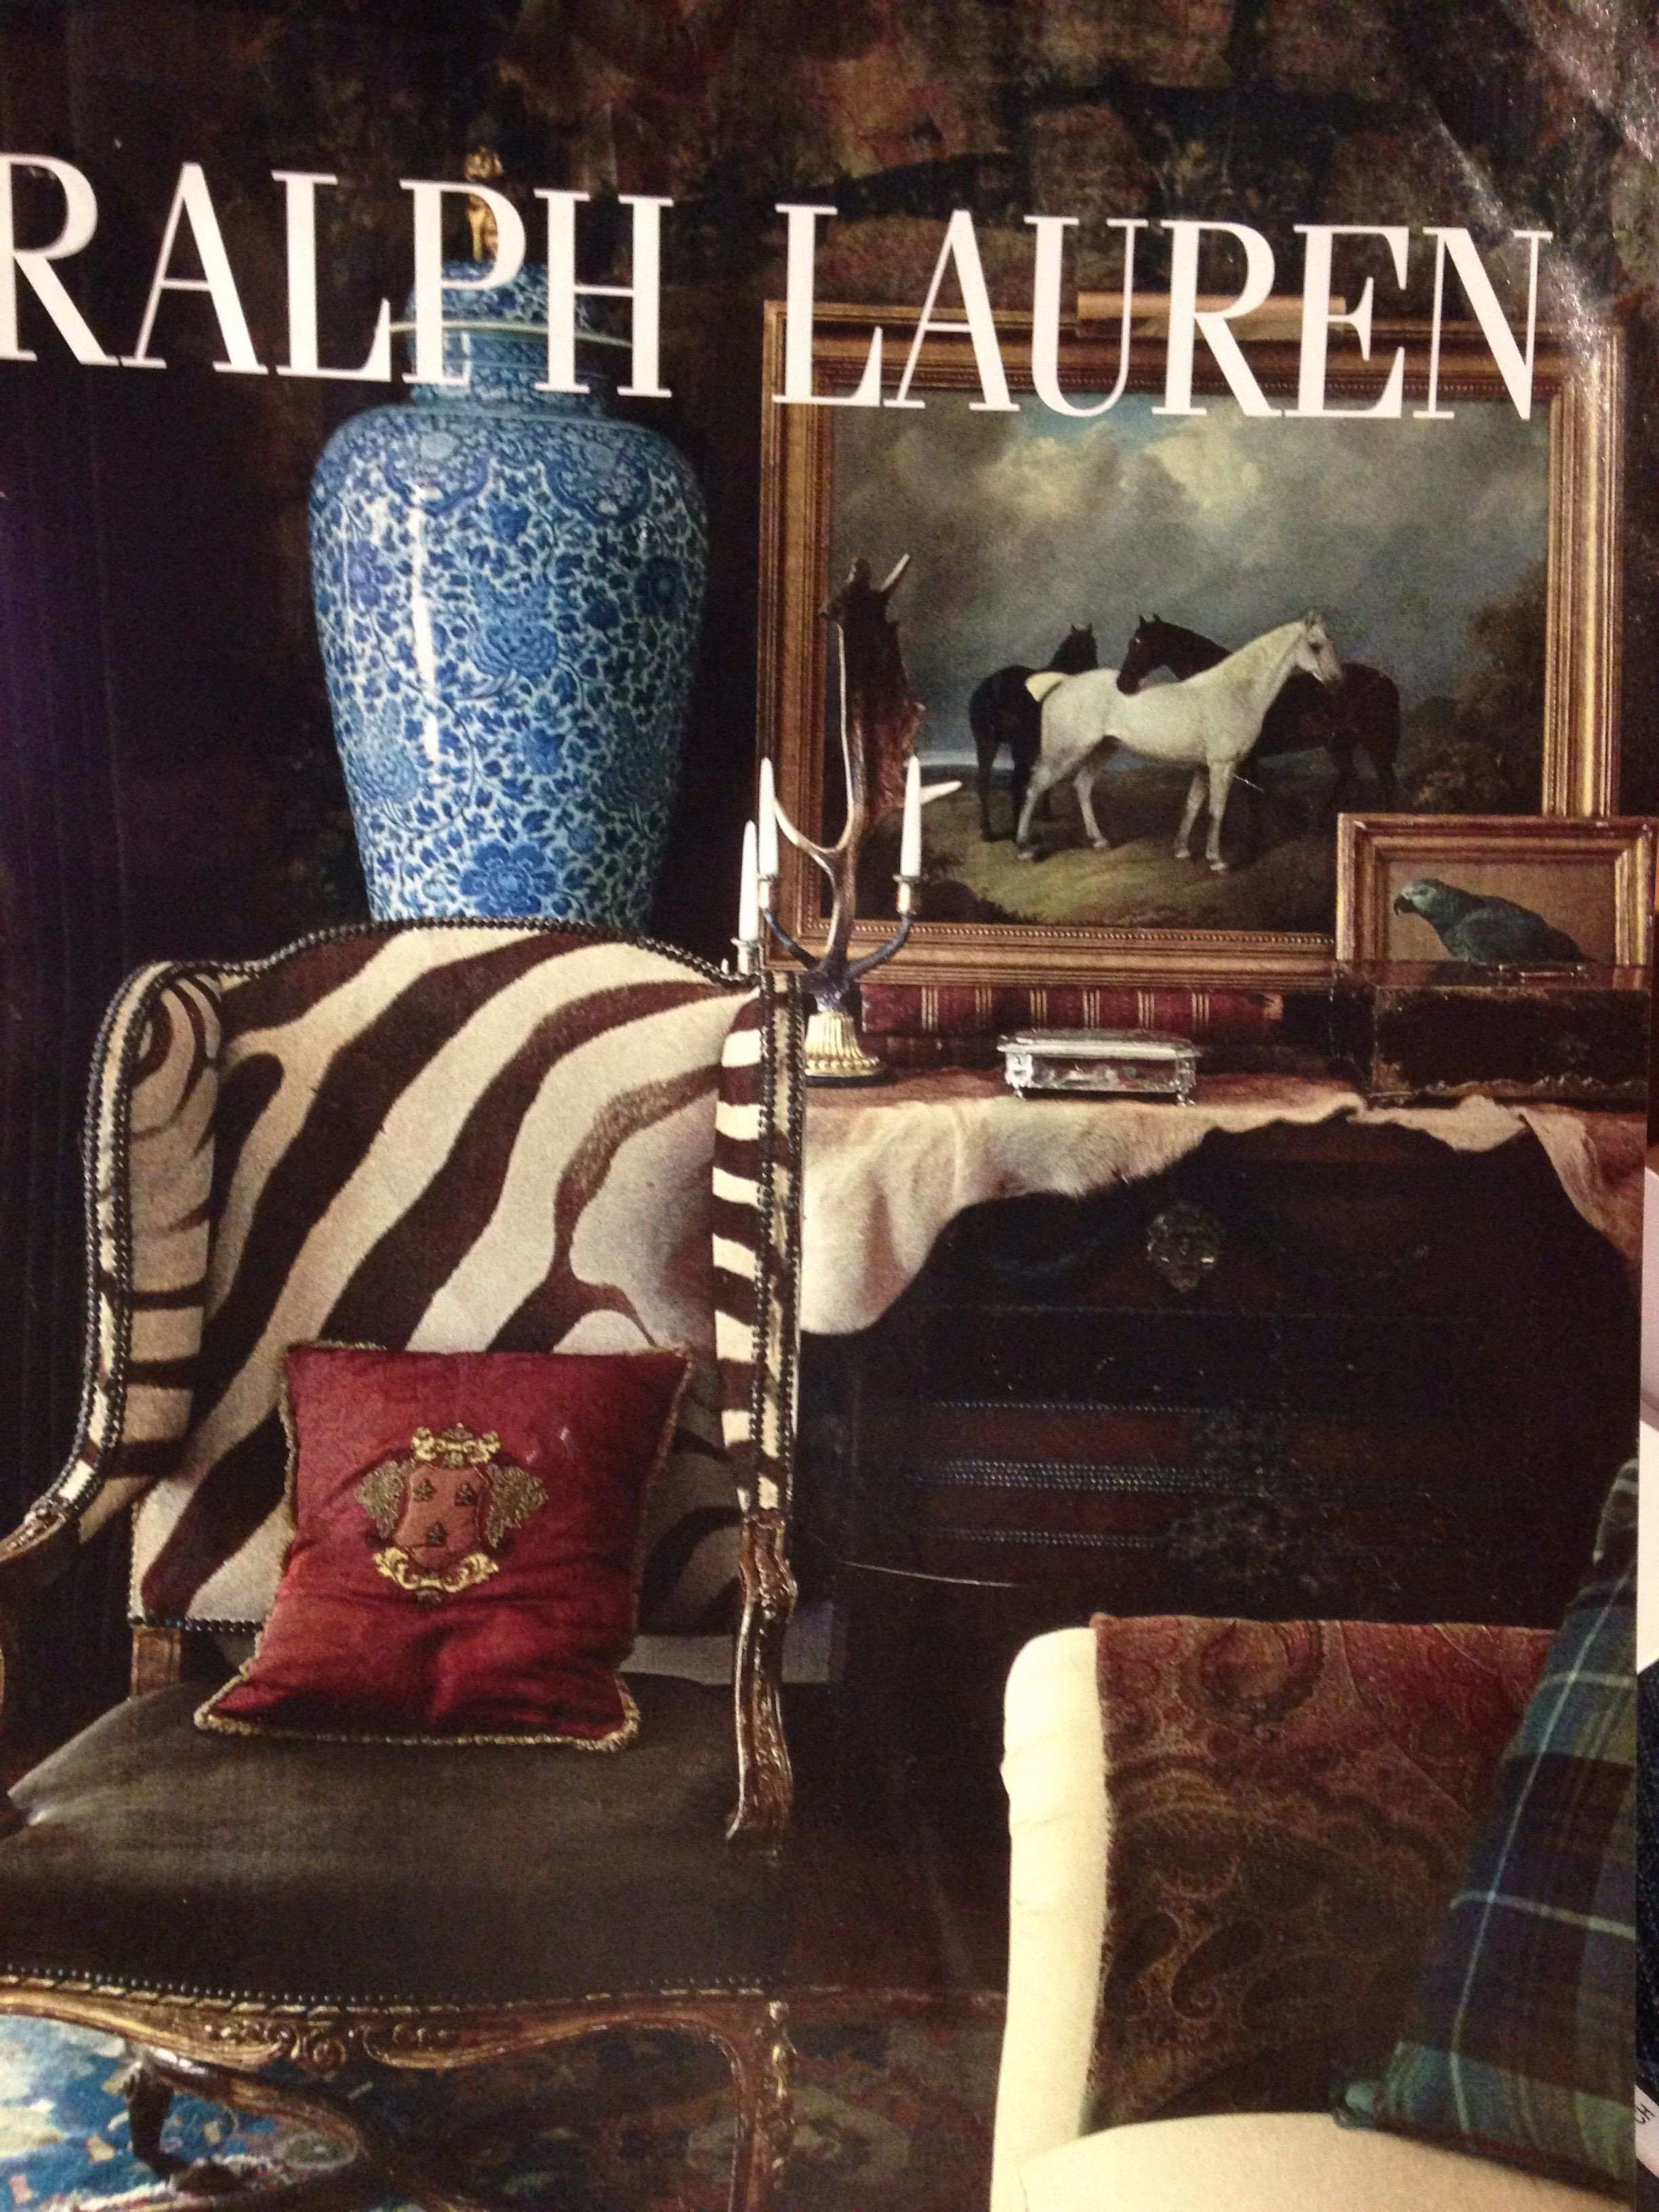 Ralph Lauren Bedroom Furniture Best Of Anything Ralph Lauren Plaid Animal Print and Blue and